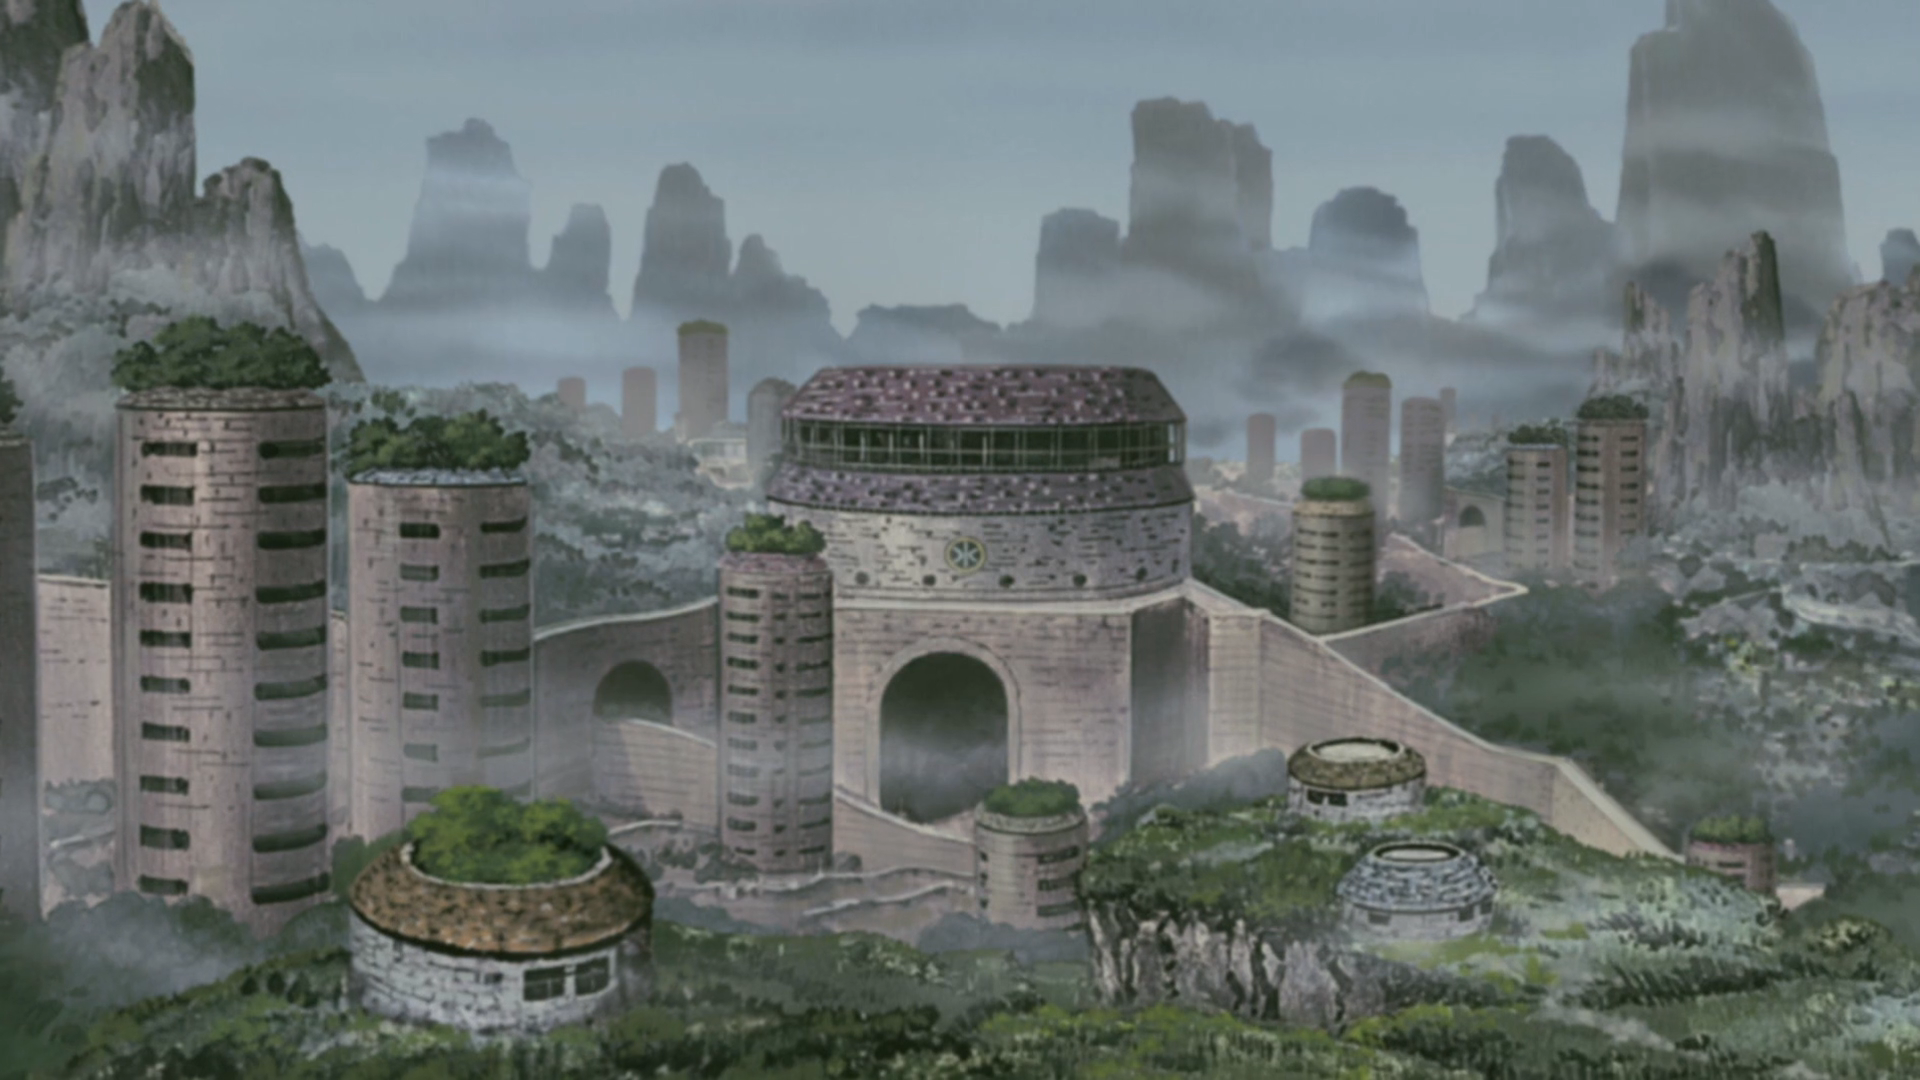 http://images.wikia.com/naruto/images/7/71/Kirivillage.png